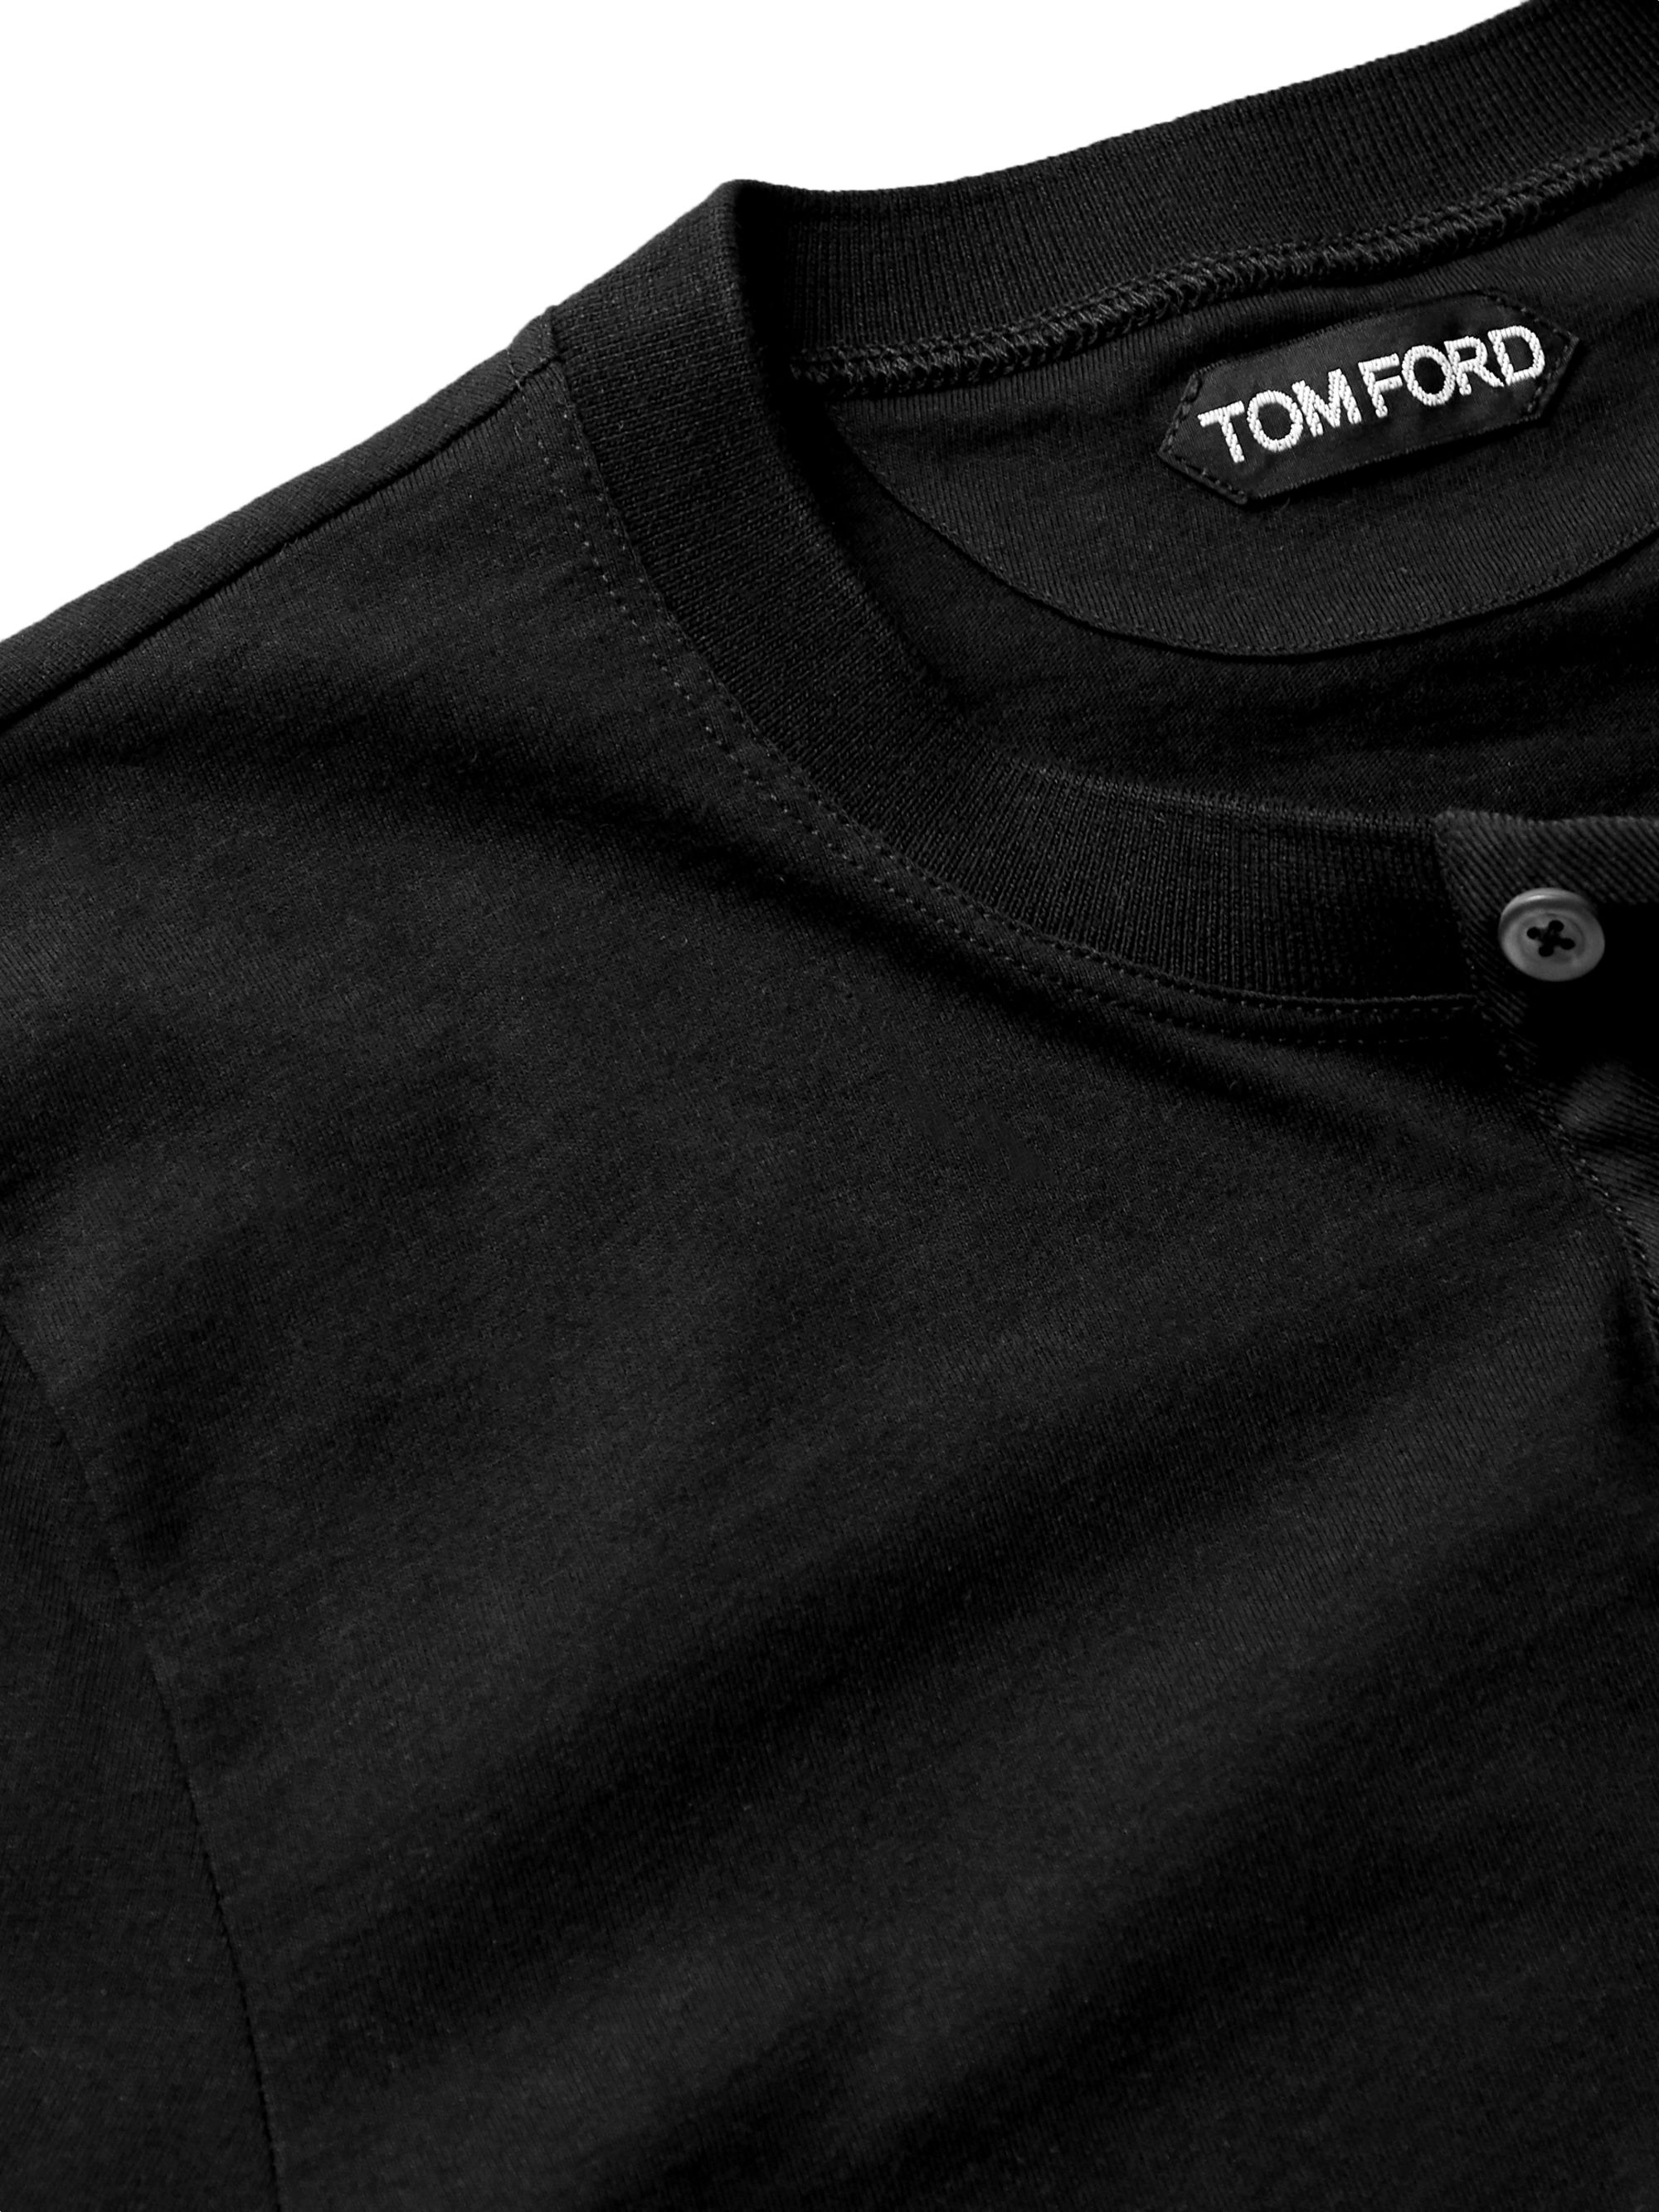 Black Slim-fit Cotton-jersey Henley T-shirt | Tom Ford